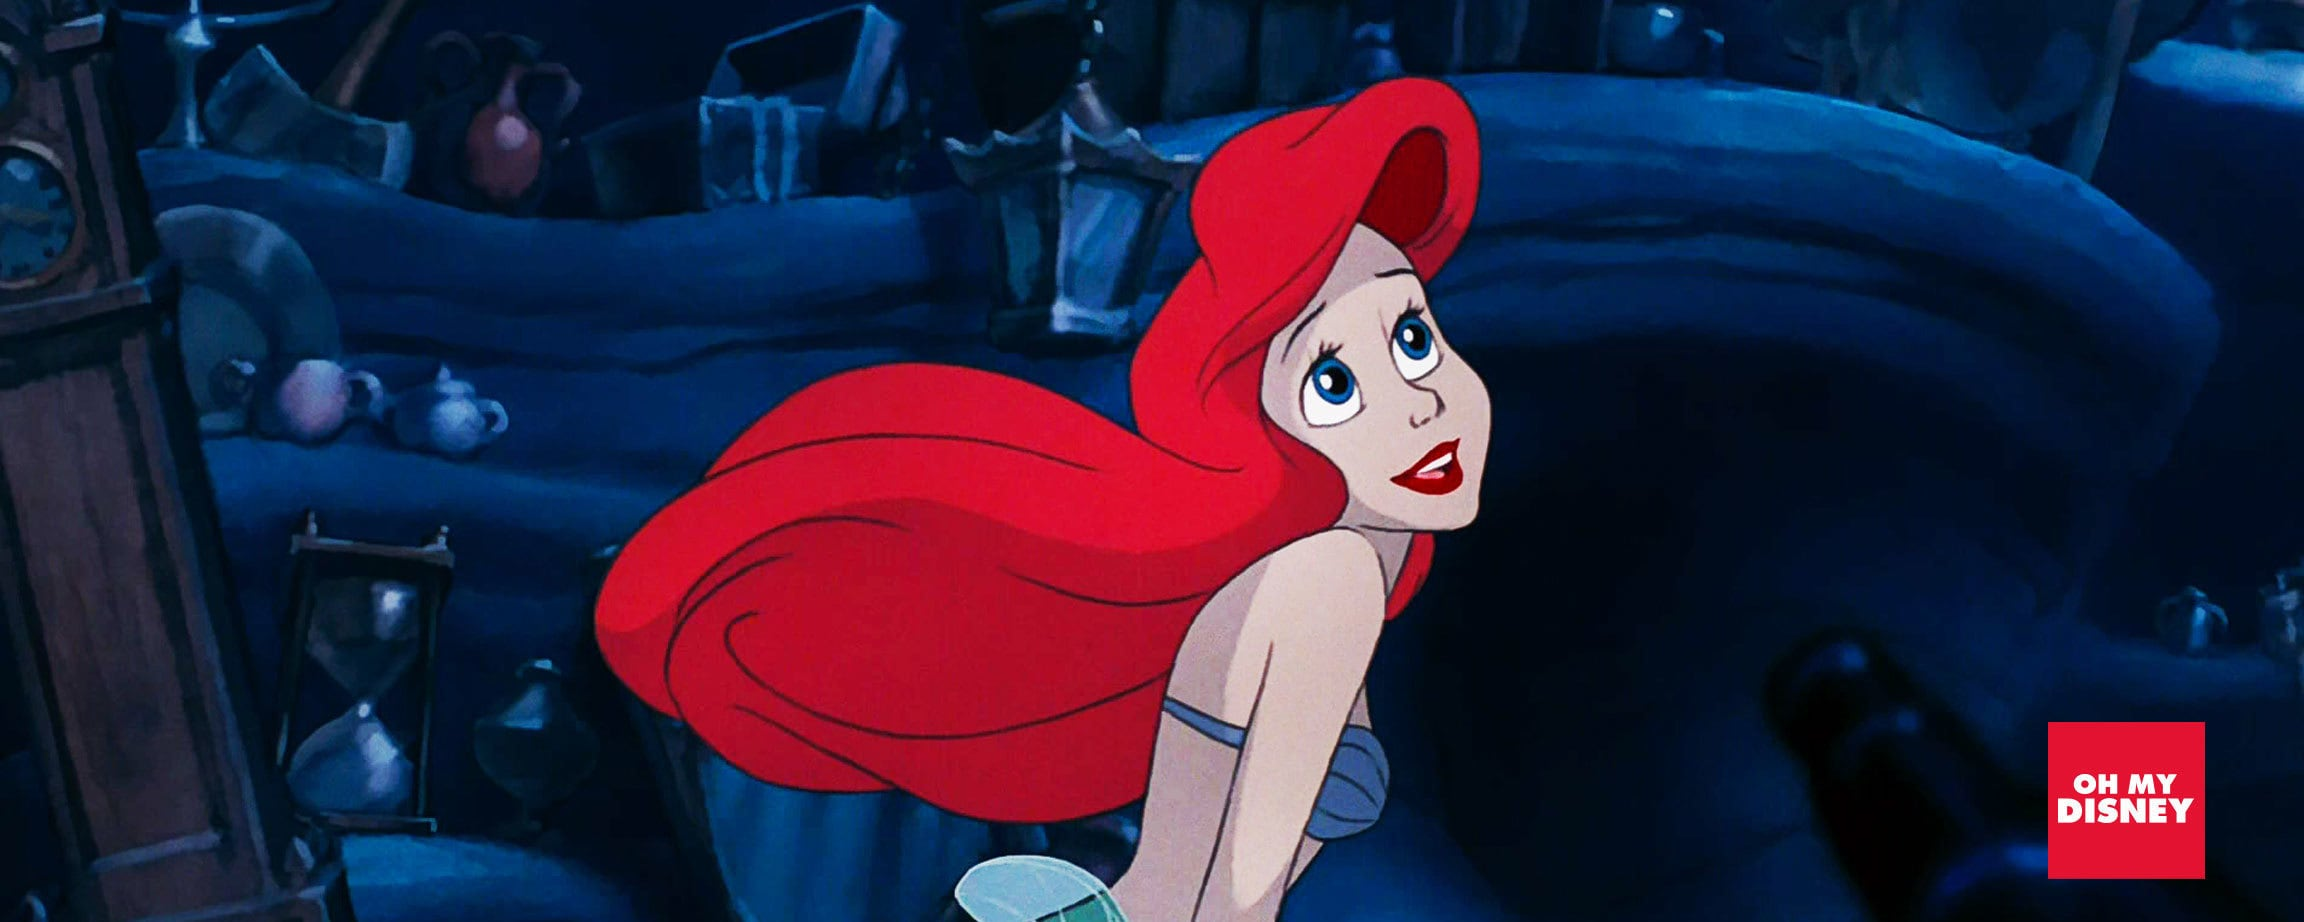 The Hardest Disney's The Little Mermaid Quiz You'll Ever Take